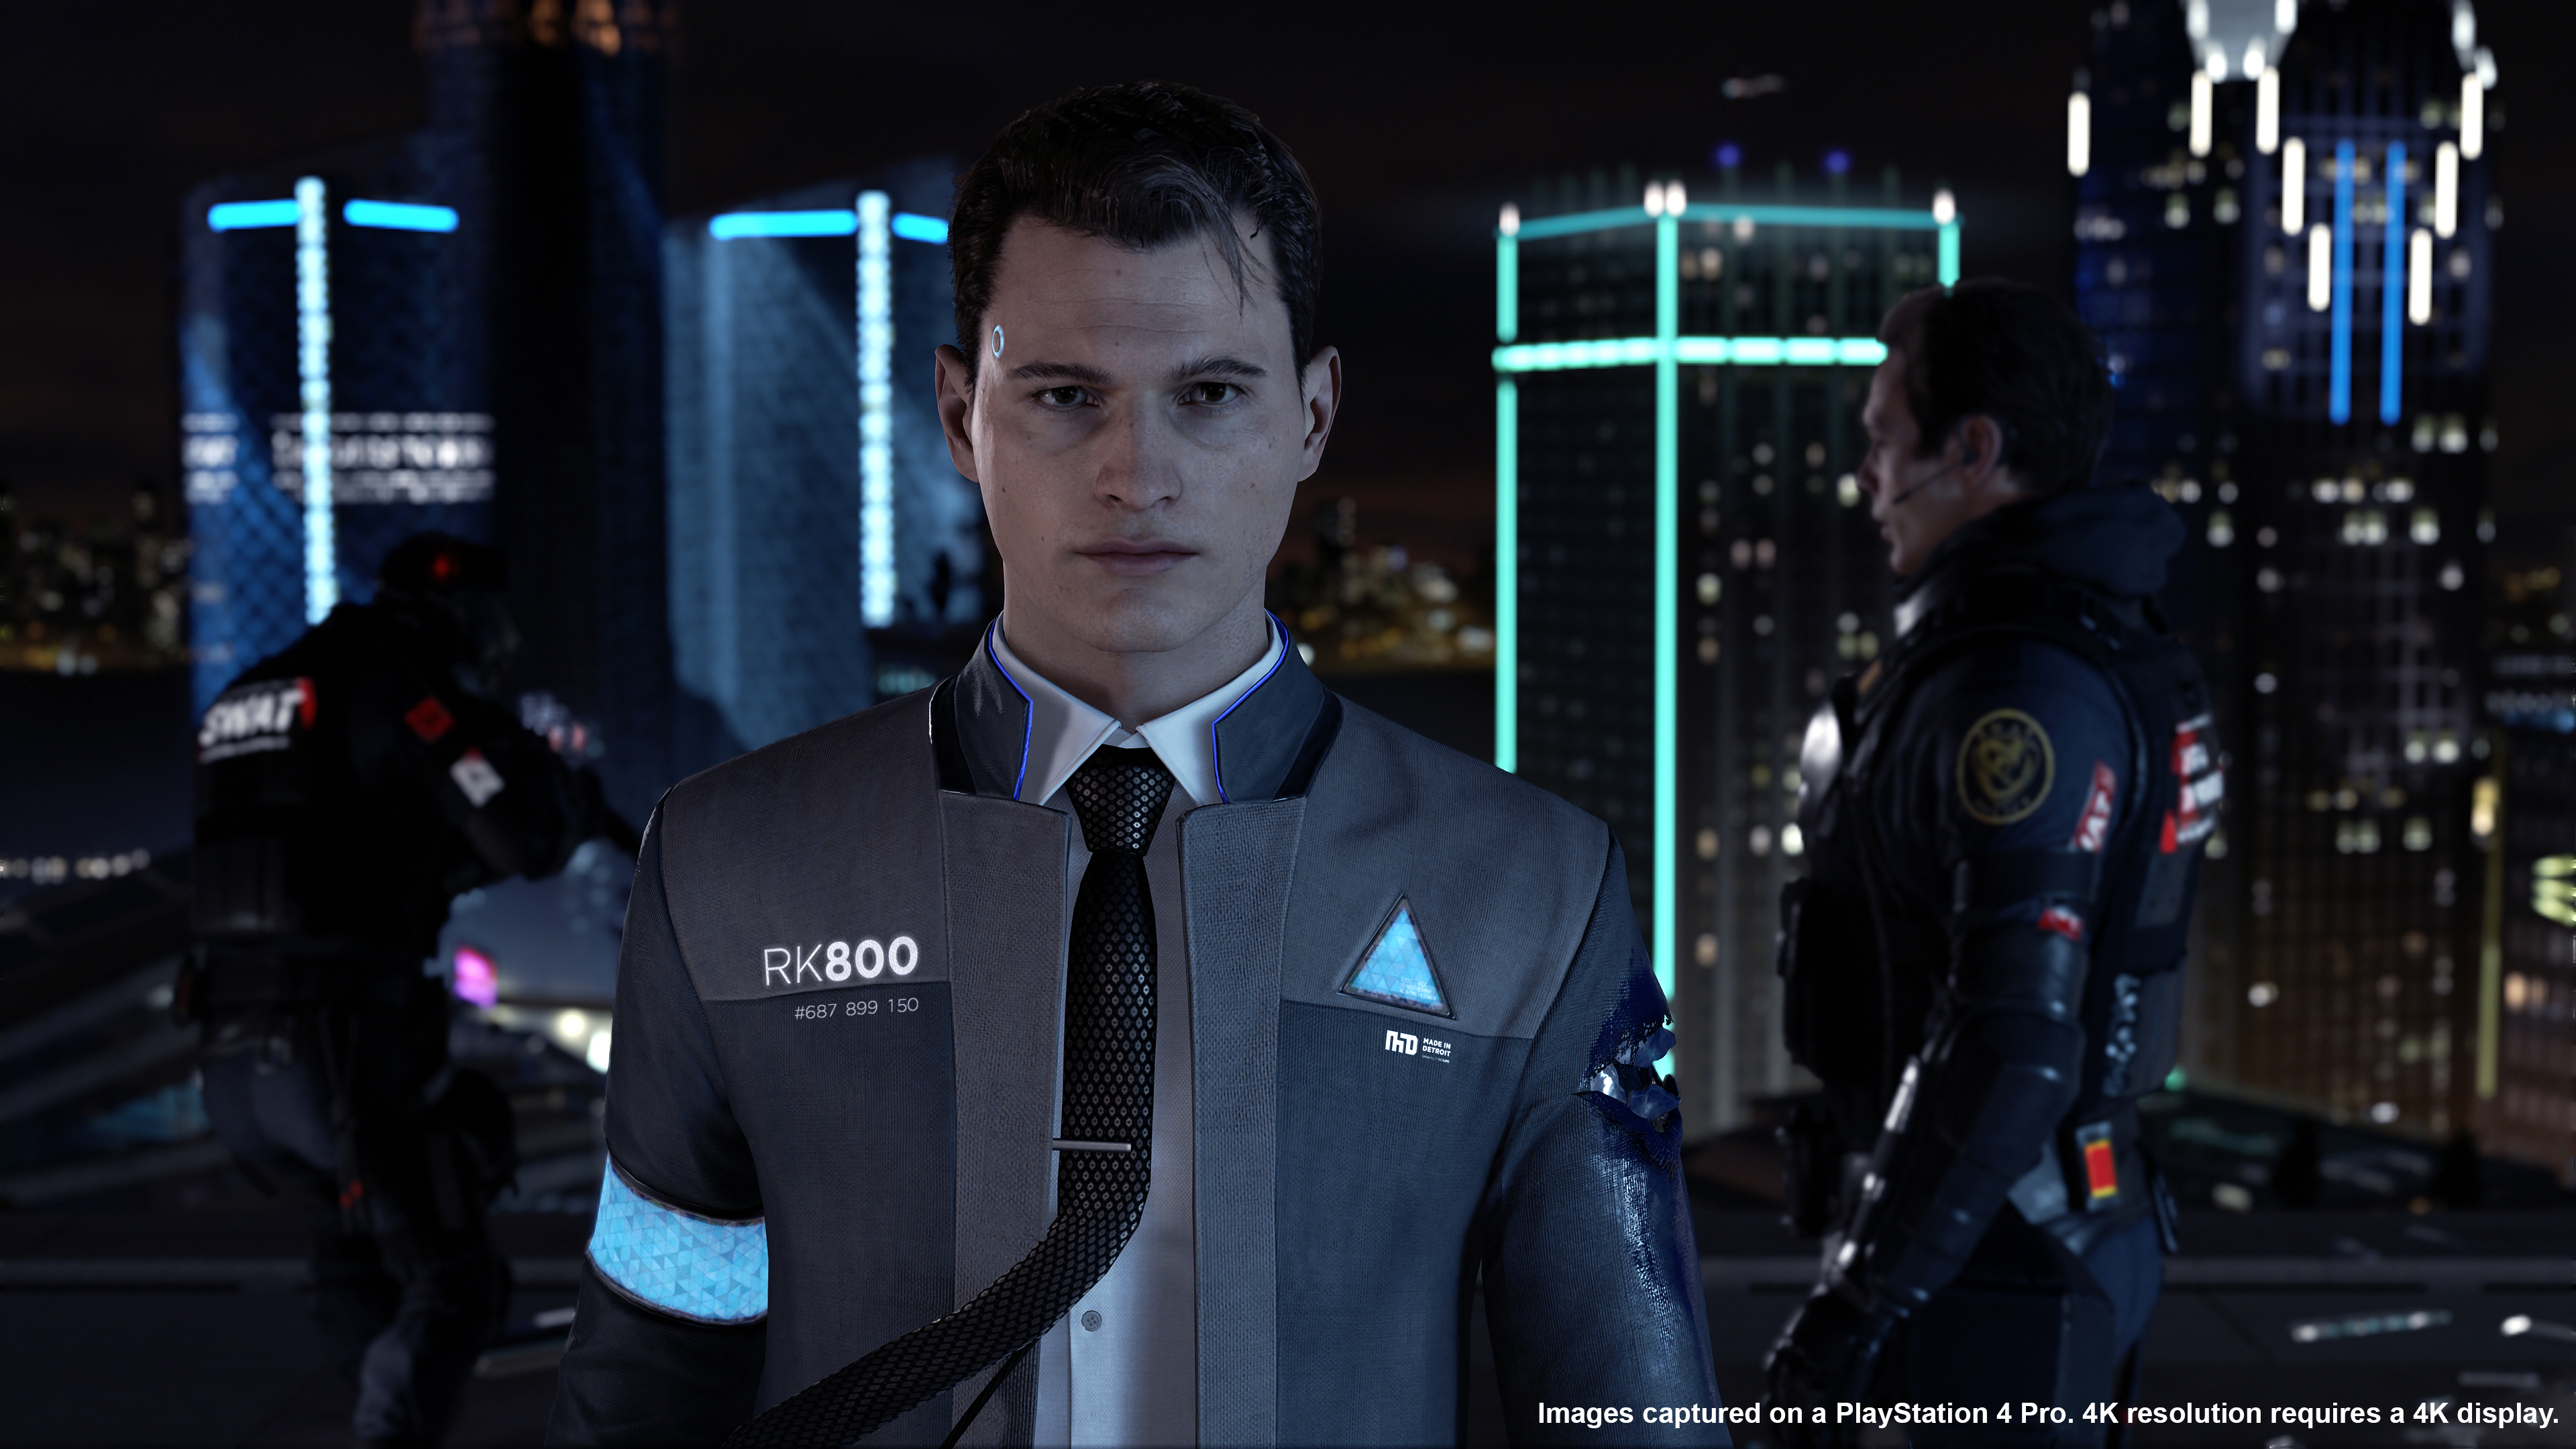 Connor, one of the main characters in Detroit: Become Human